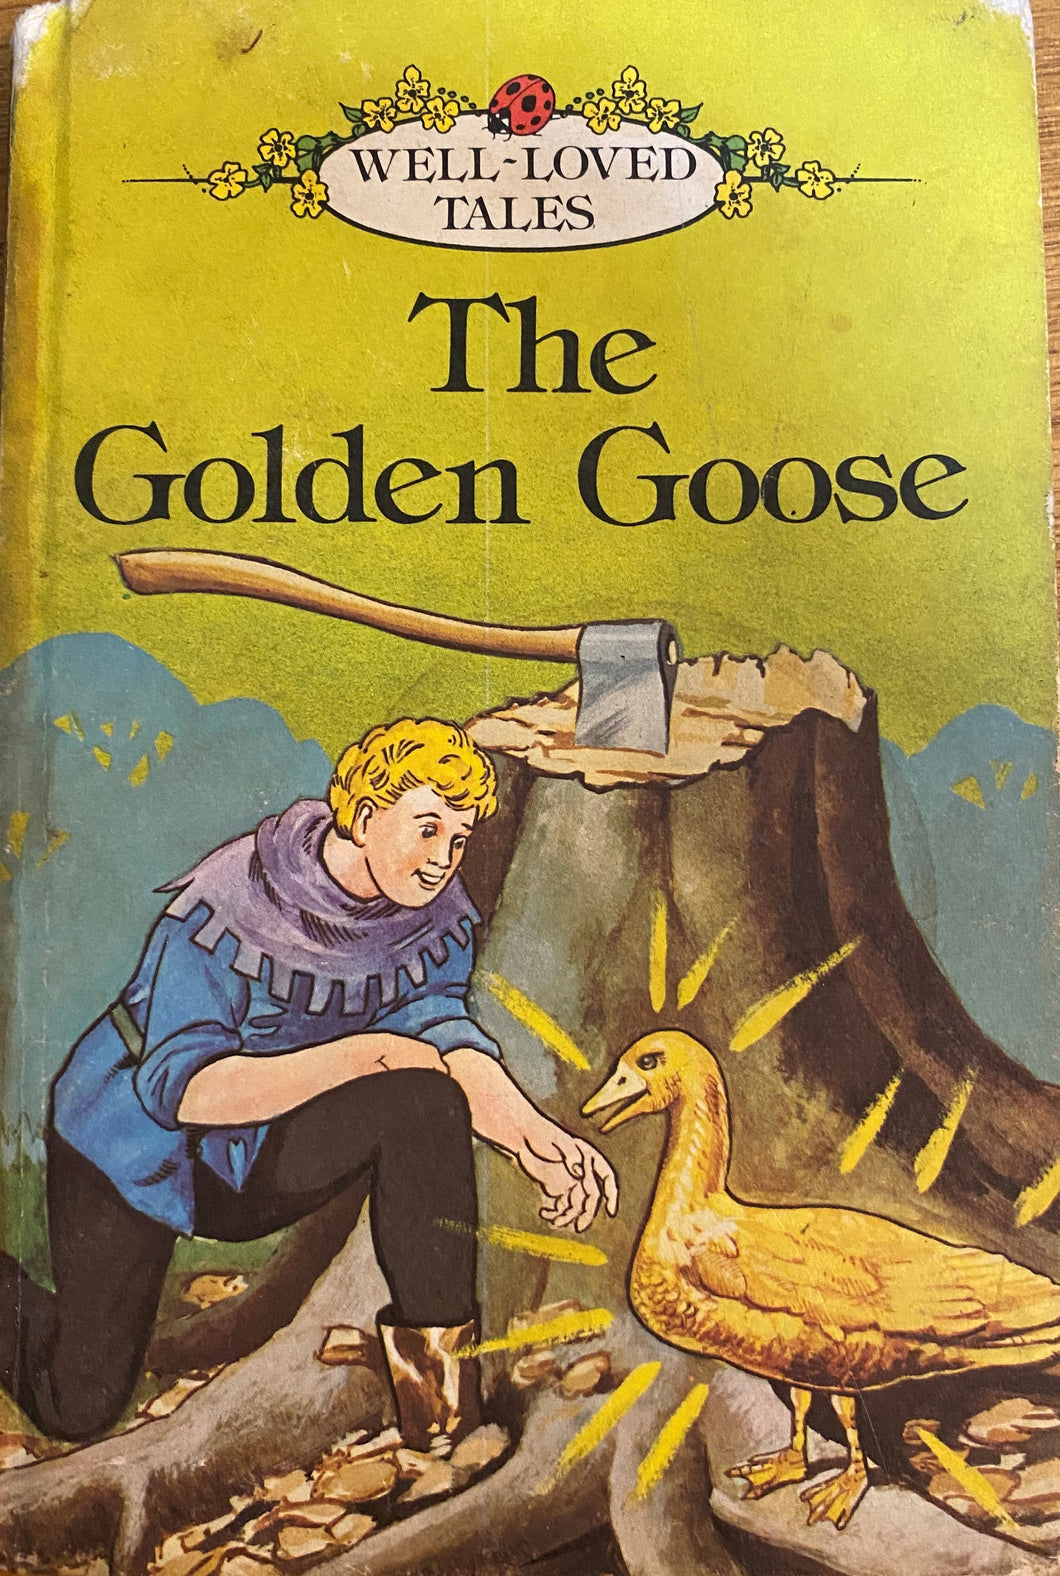 Well Loved Tales: The Golden Goose (1 July 1982 - 31 December 1983)